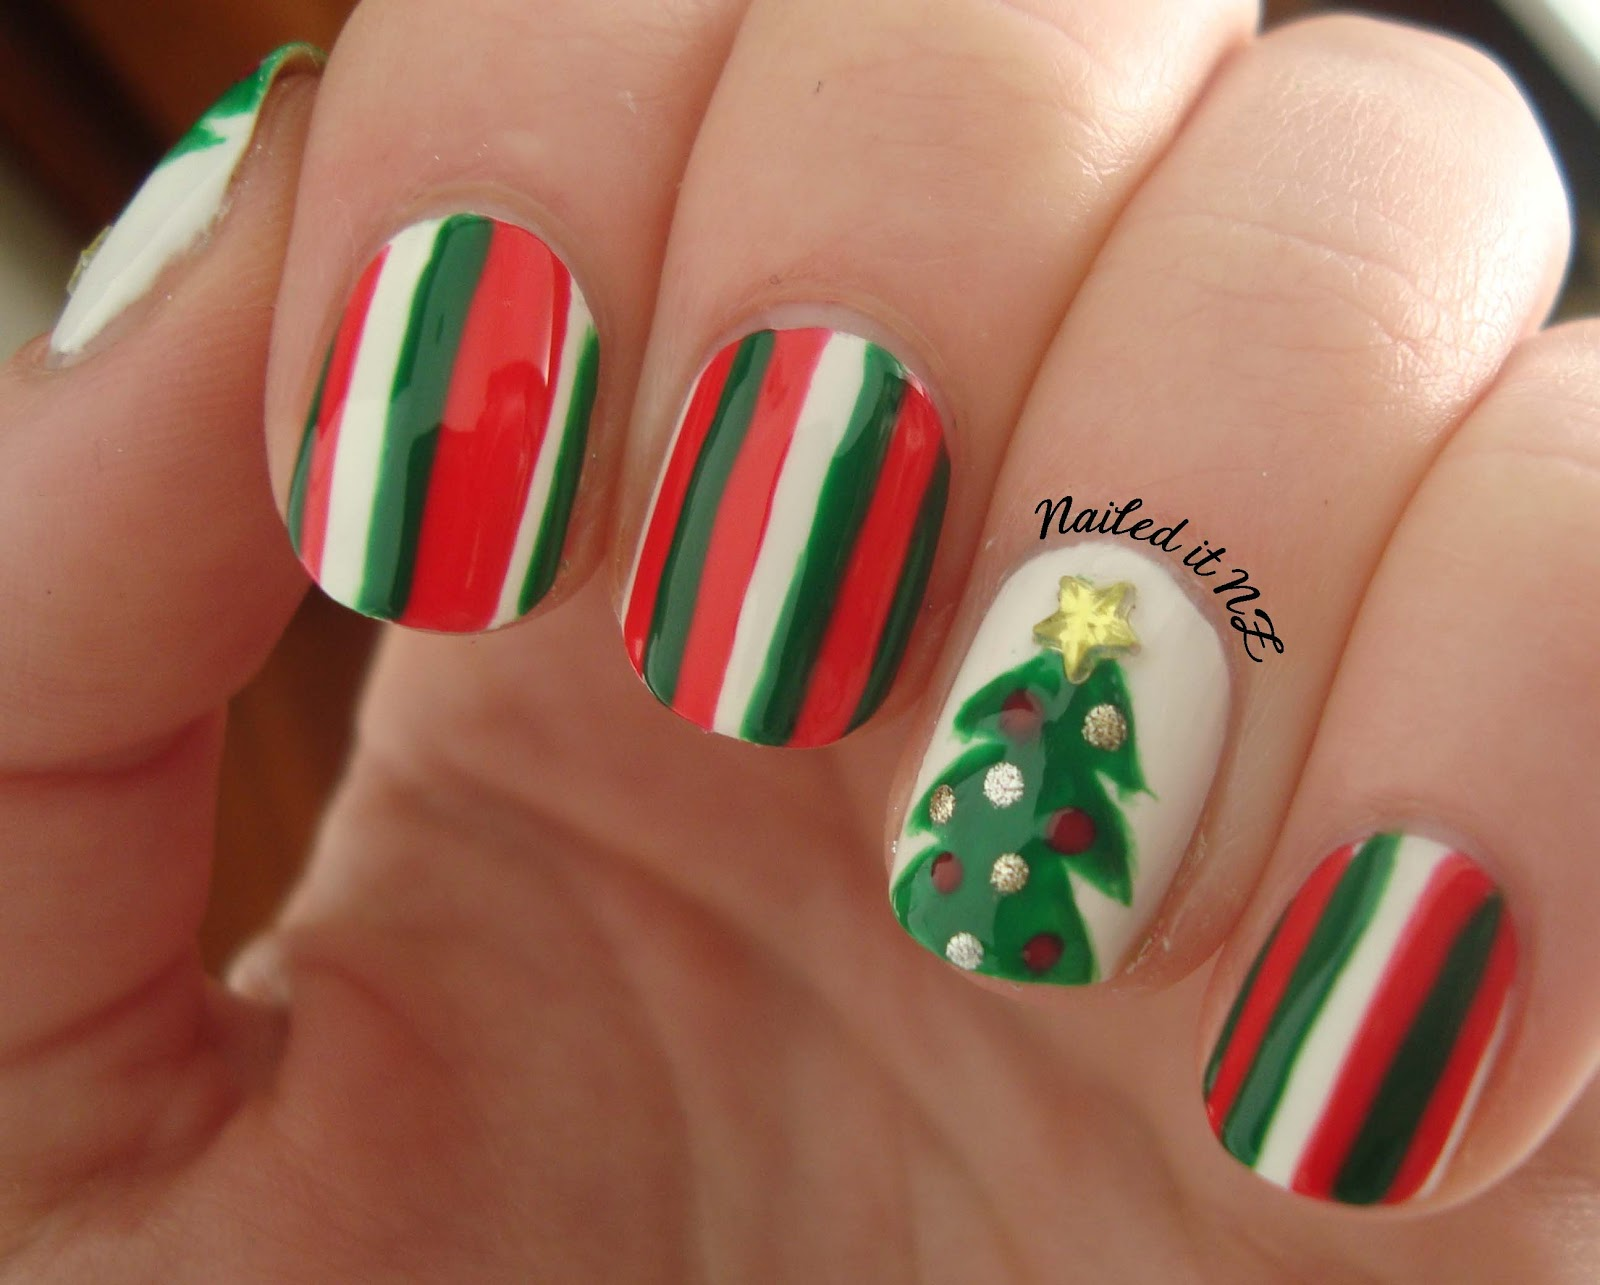 Nail art for short nails #4 - Christmas tree nails + Mosaic nails ...